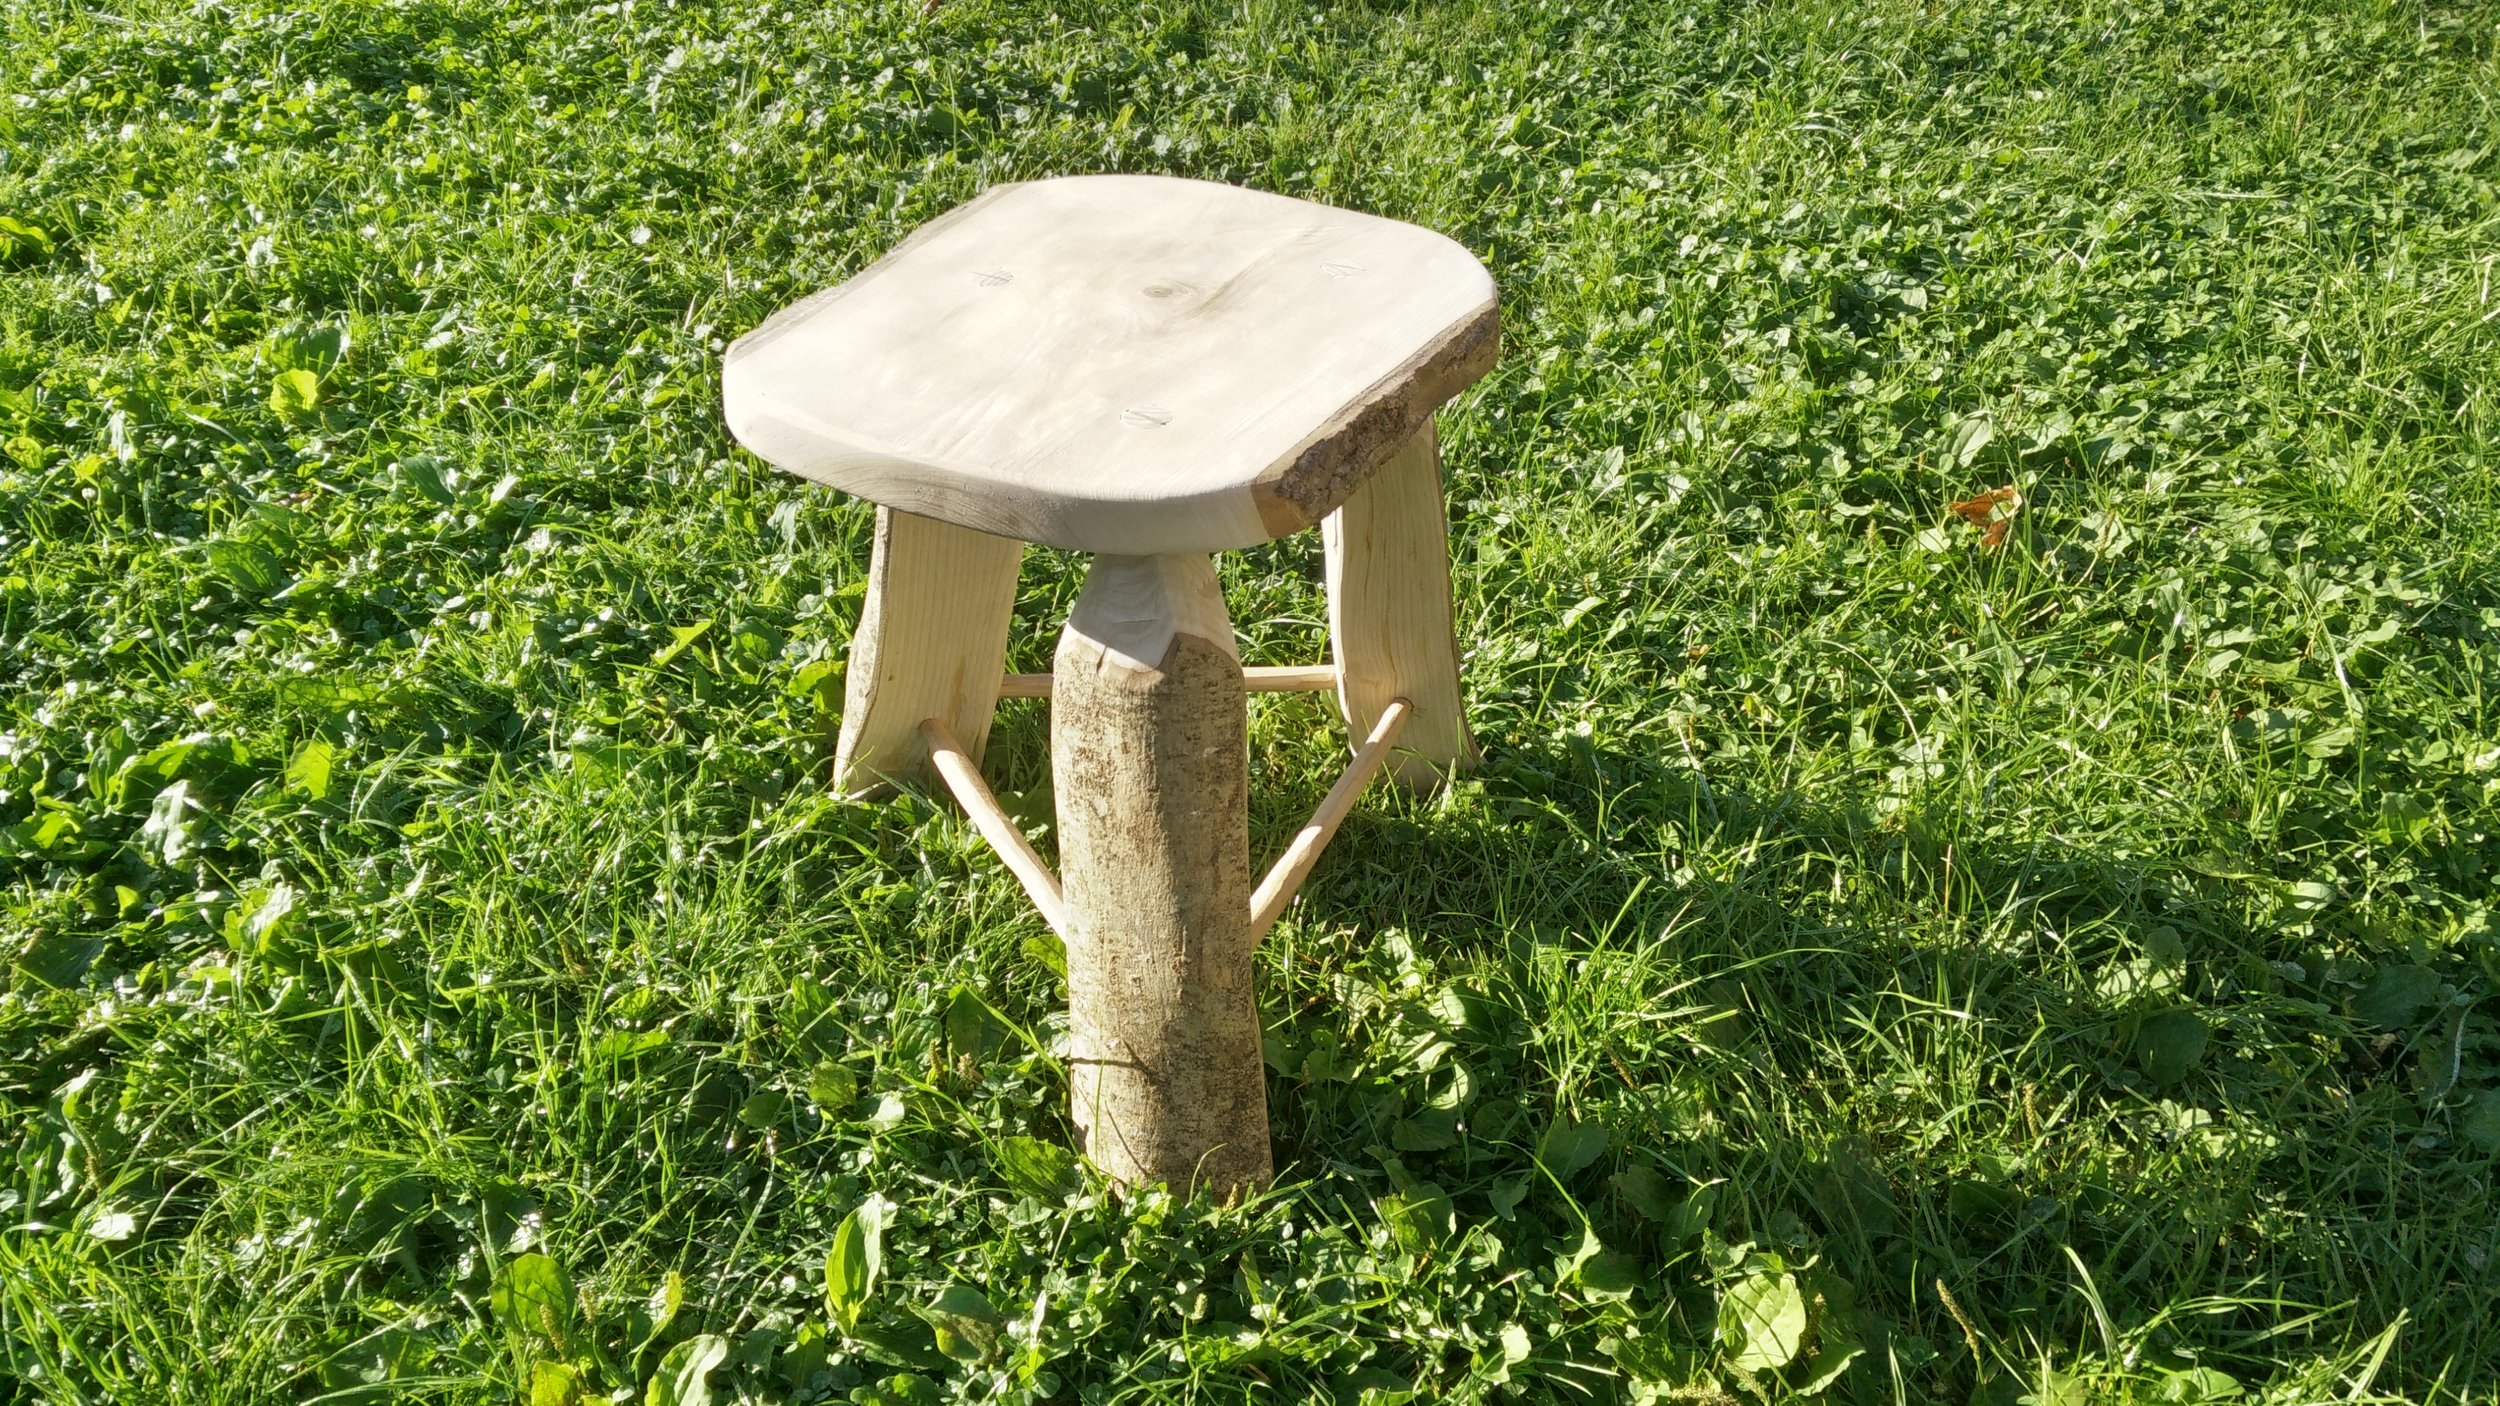 Now as if by magic the stool will appear perfect and finished!  What I didnt show was fitting stretchers and wedging the legs into the stool top. This is quite an involved process and I got so caught up in it I didnt take any photos.  Next time!